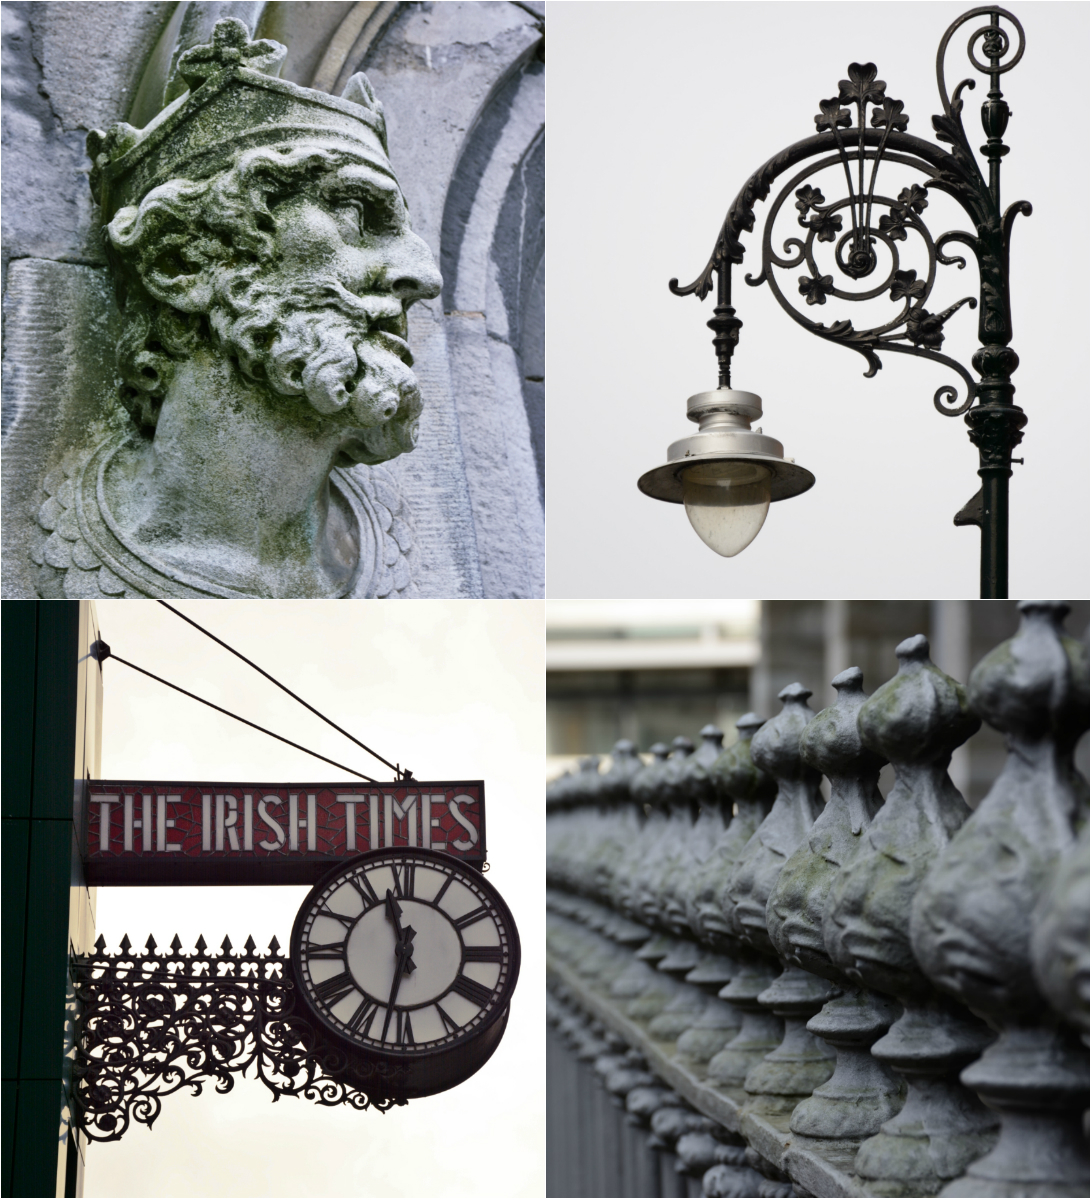 4-collage_IrishTimes